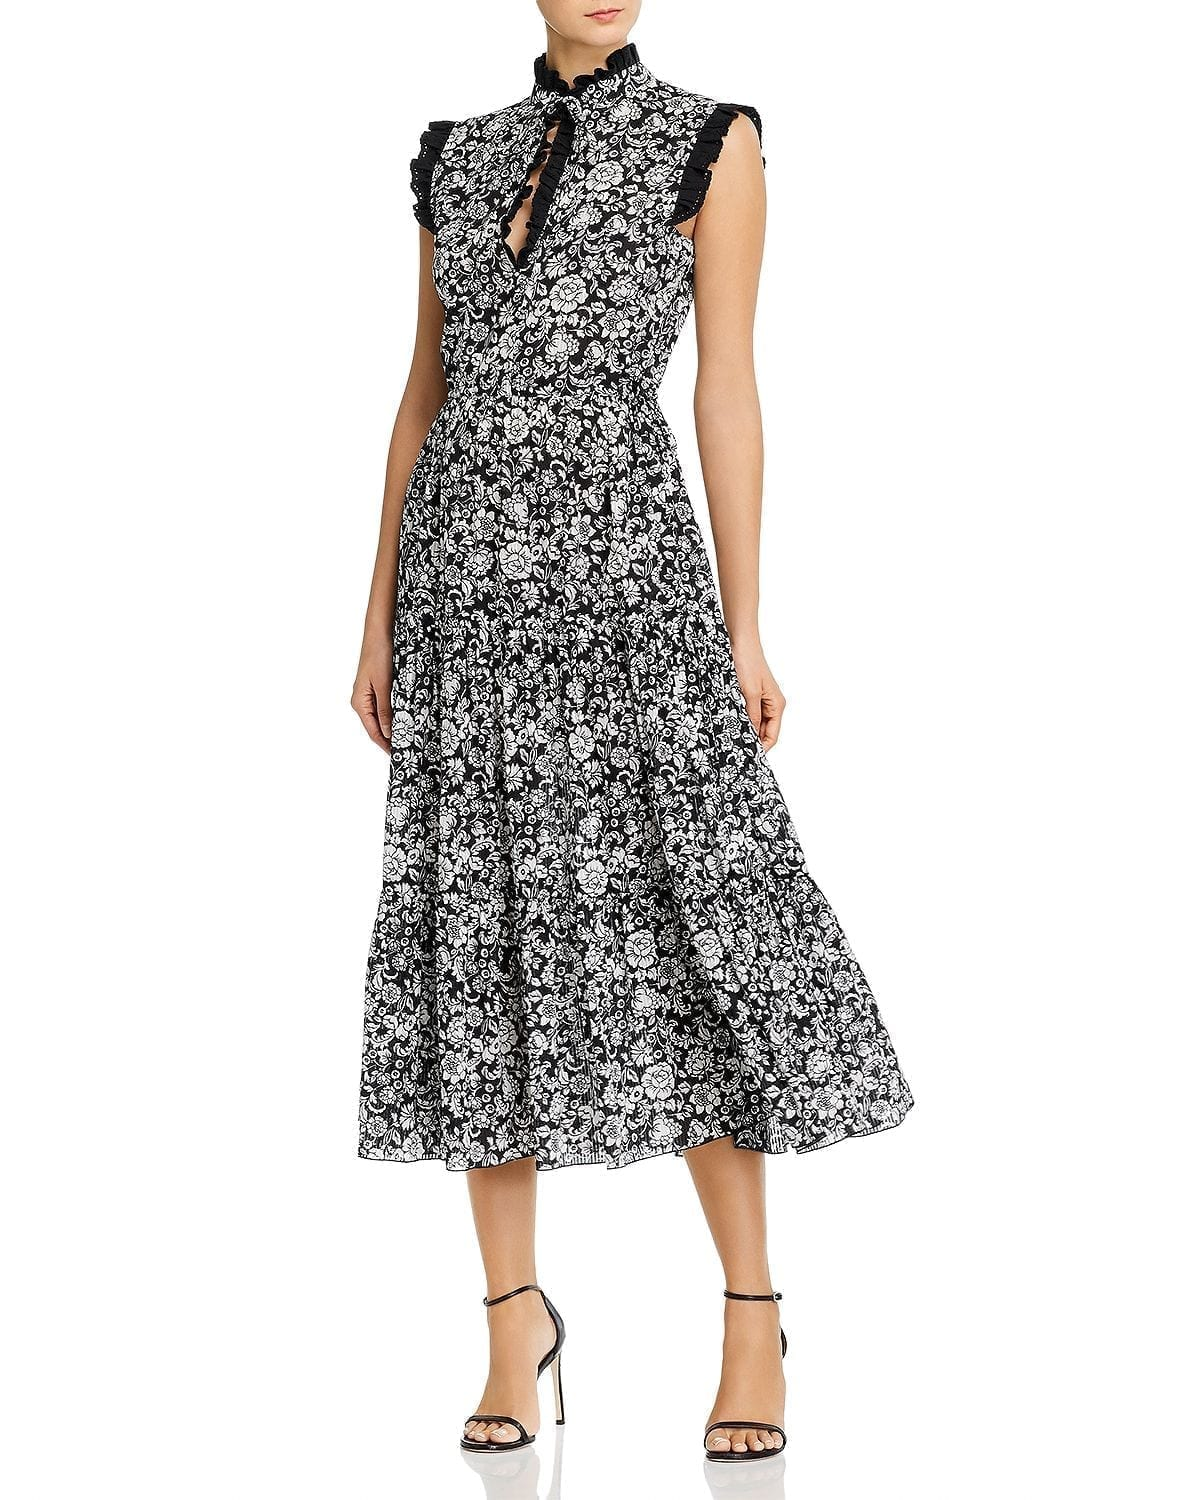 SEE BY CHLOÉ Cotton Voile Midi Dress